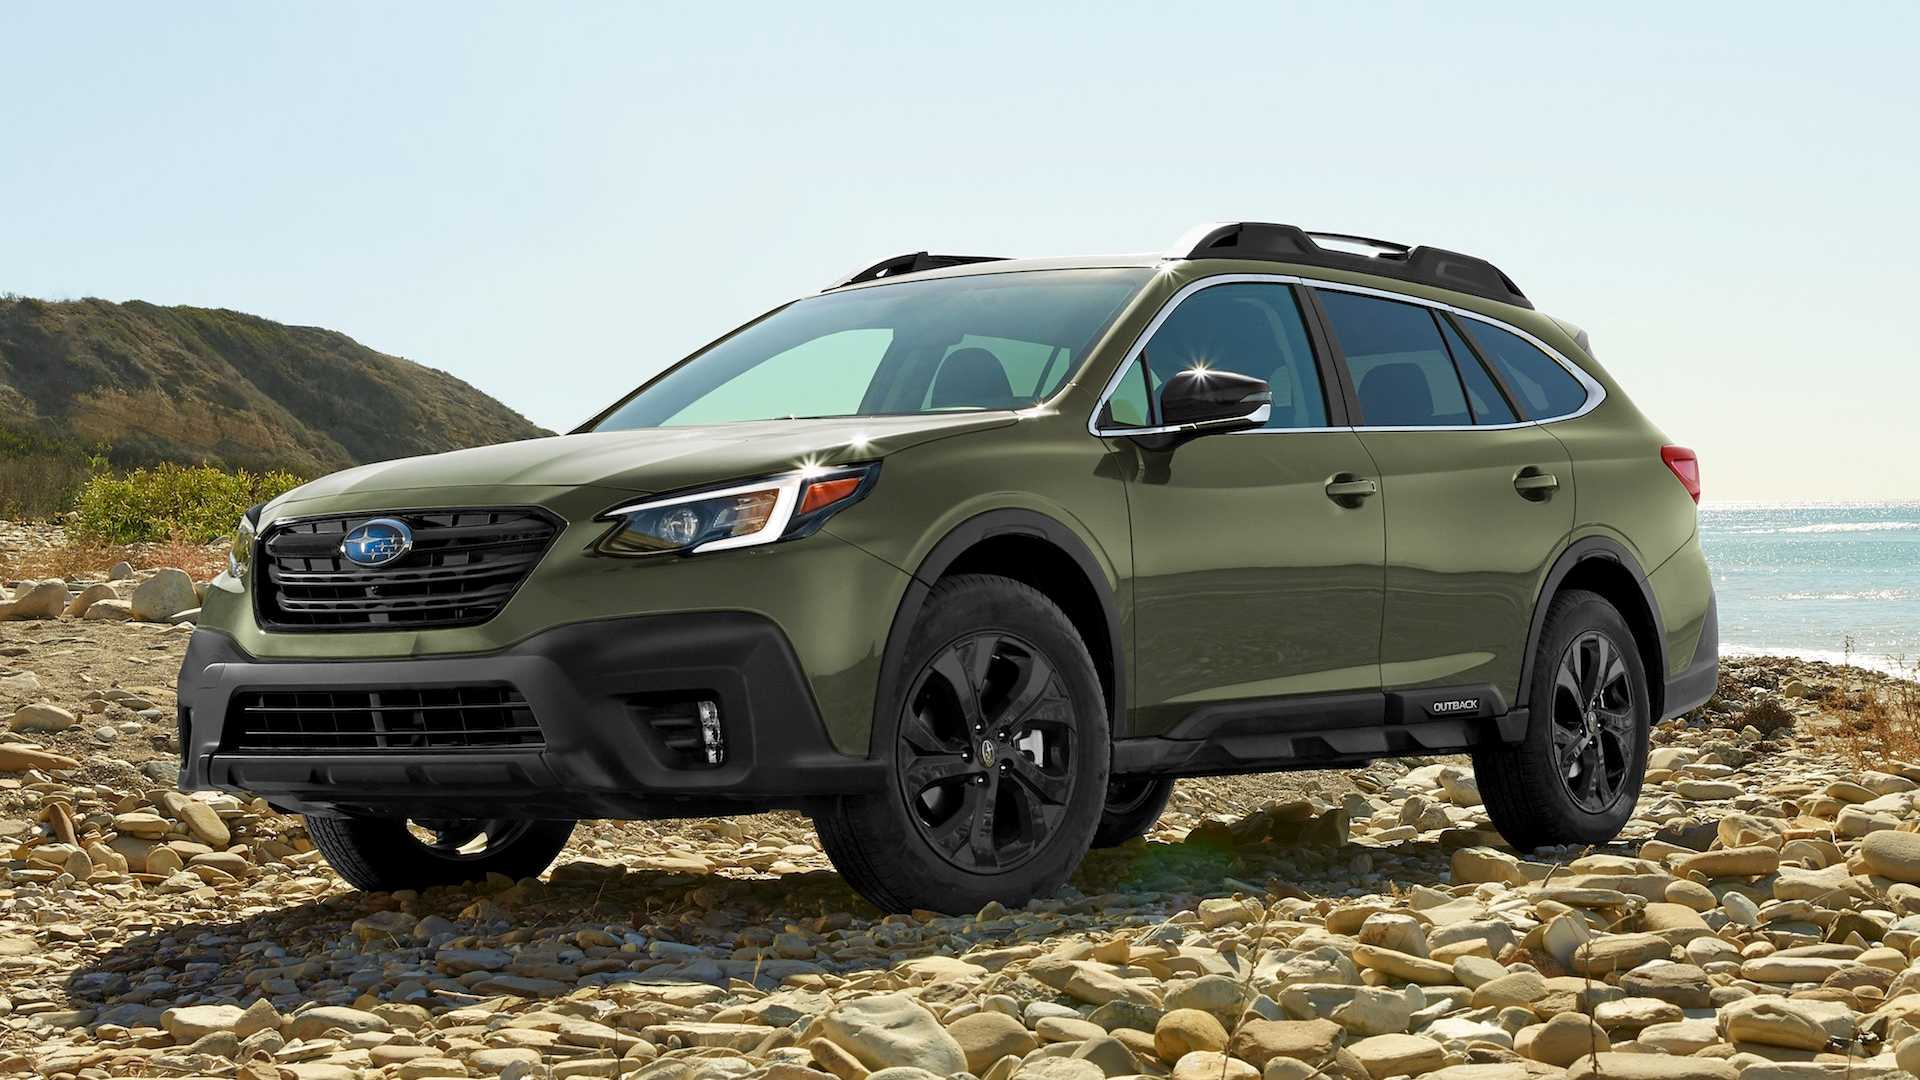 83 All New 2020 Subaru Outback Exterior Colors Picture